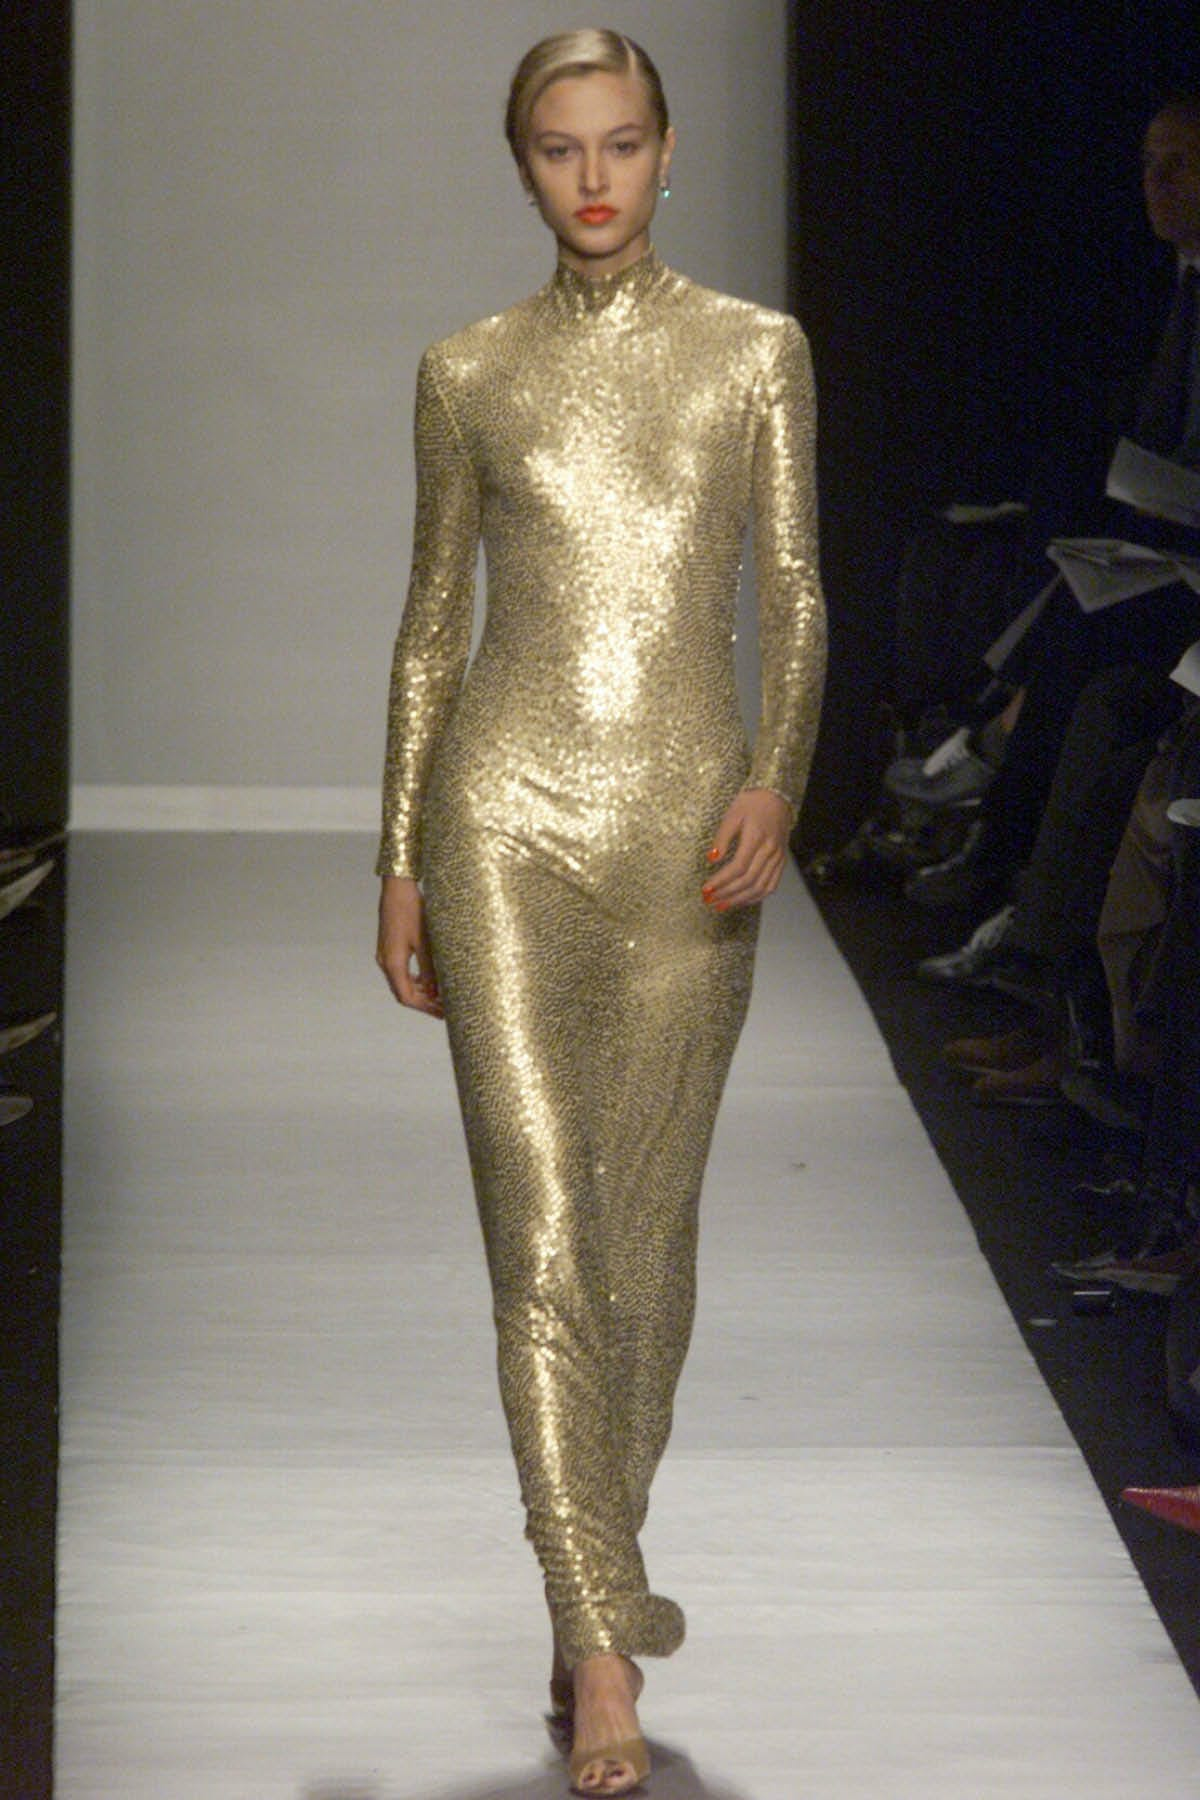 GOLD GOWN WITH PAILLETTE HAND EMBROIDERY